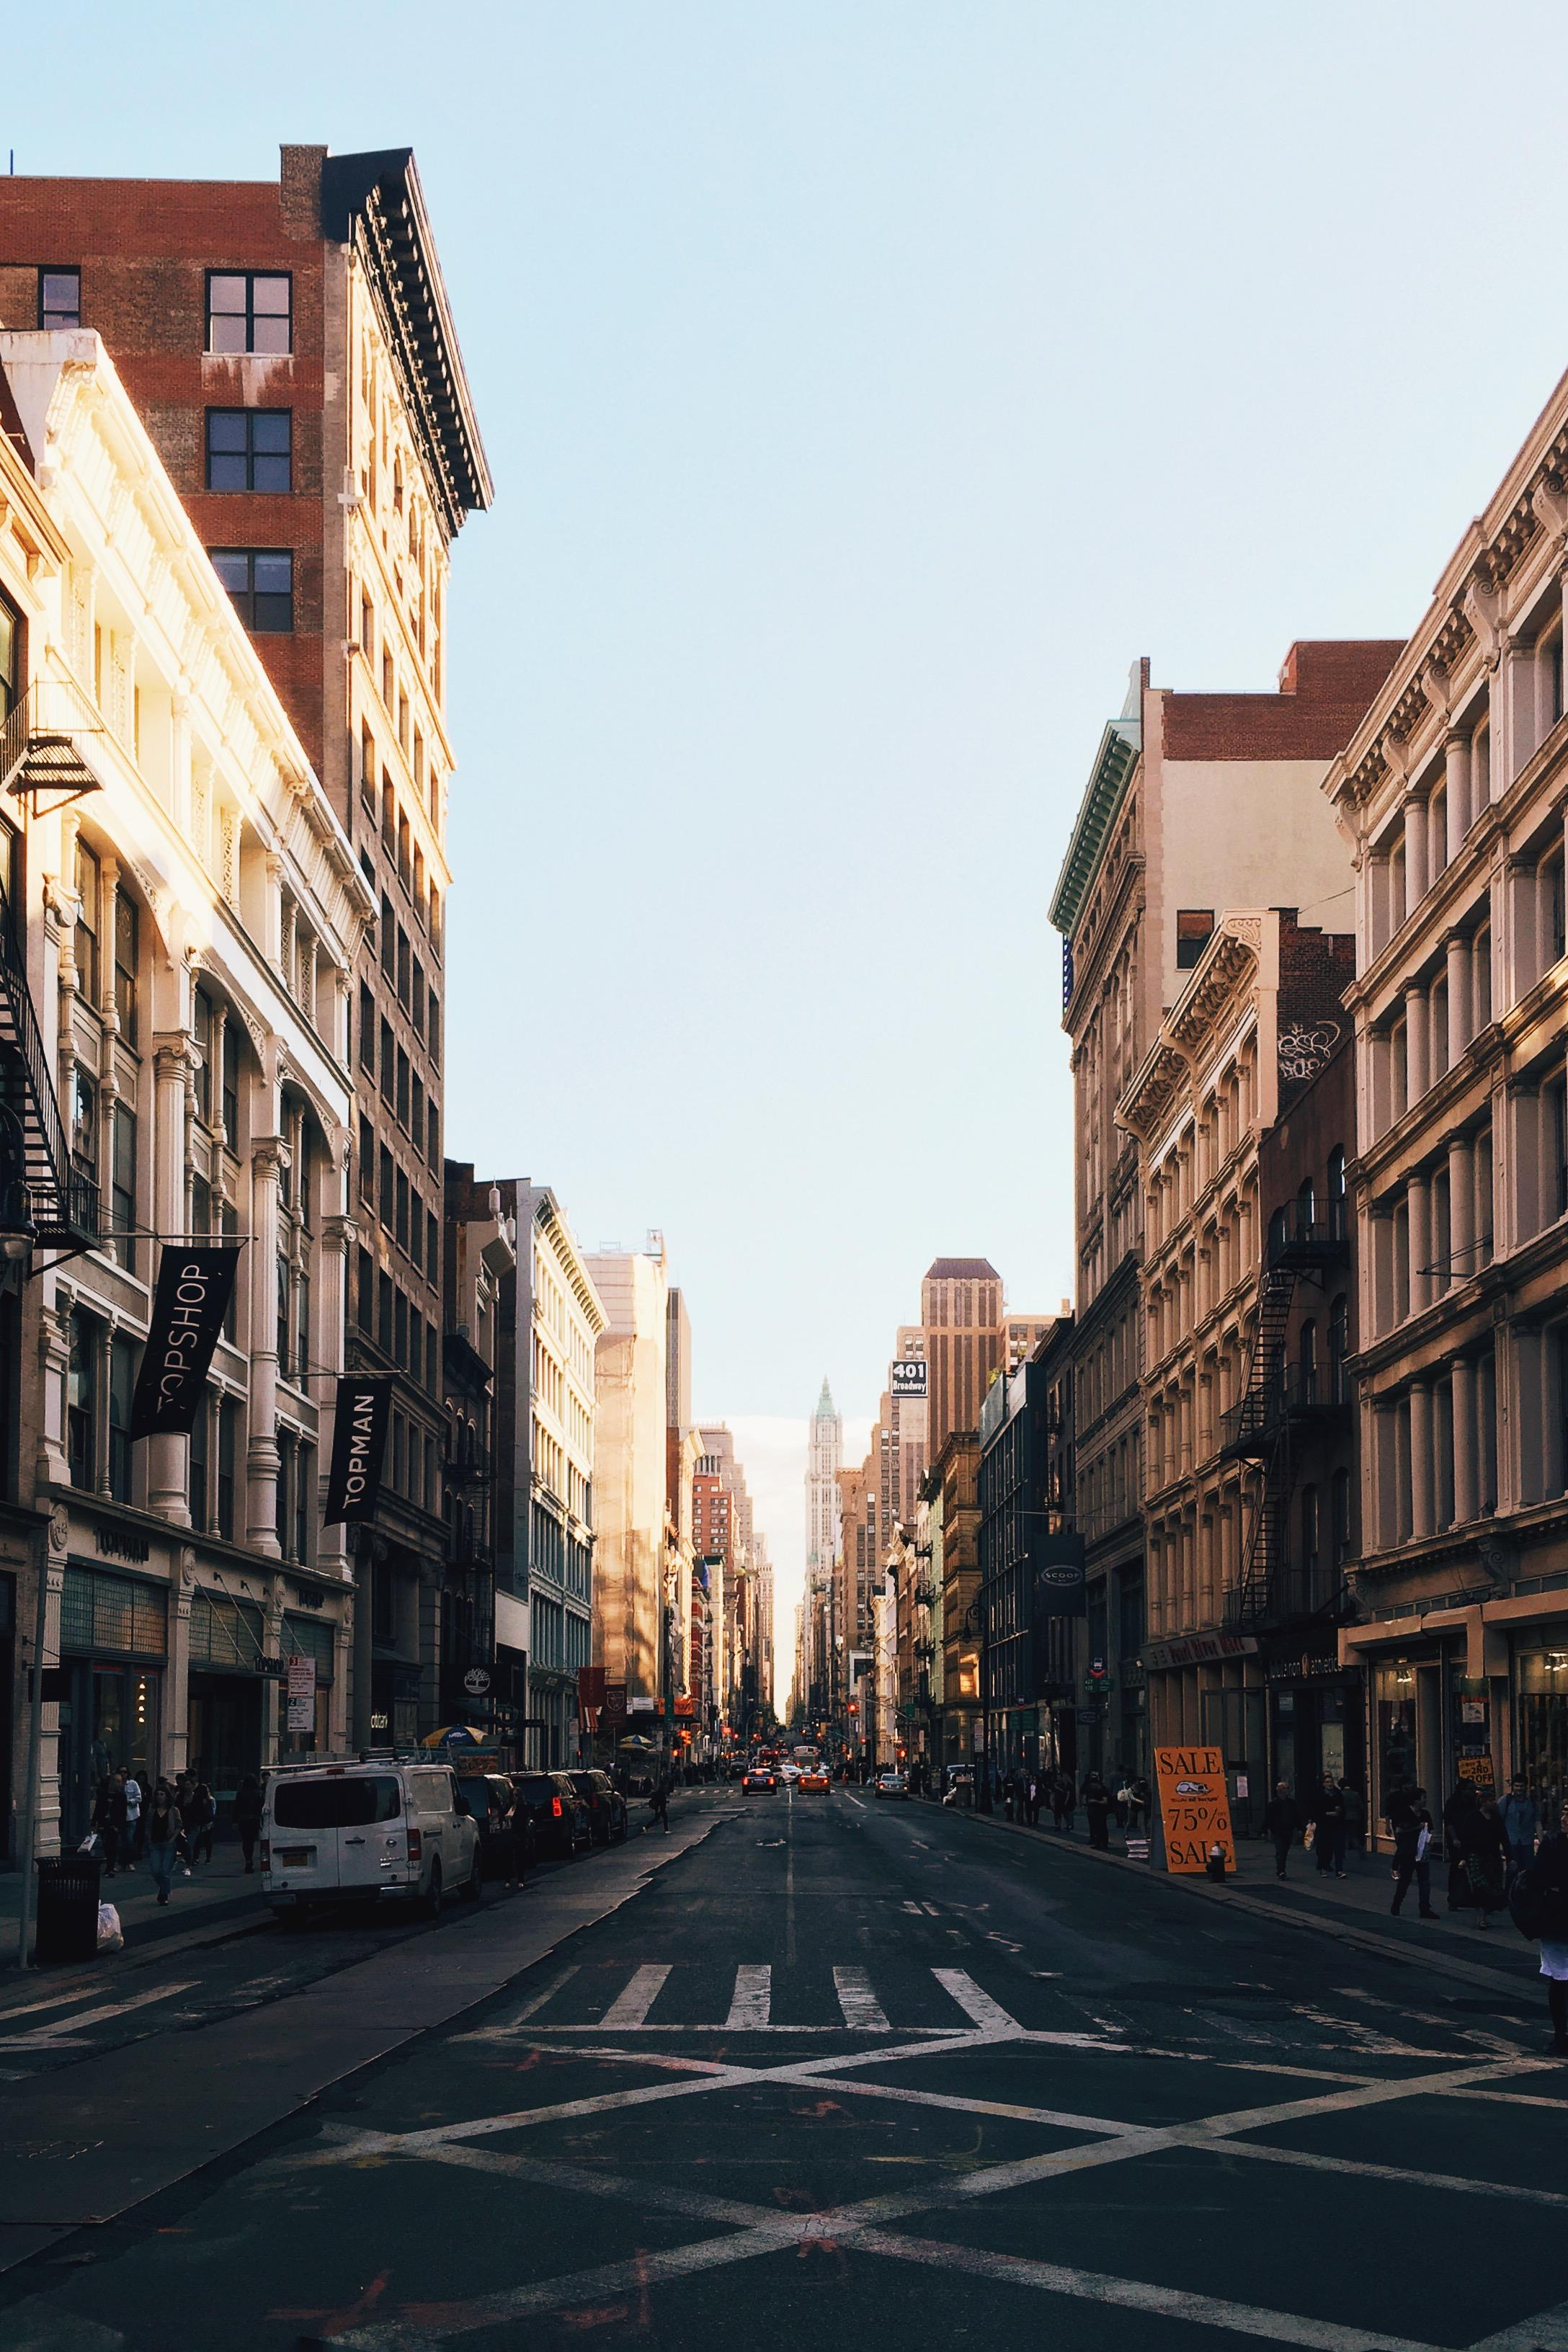 A day in Manhattan - image 8 - student project